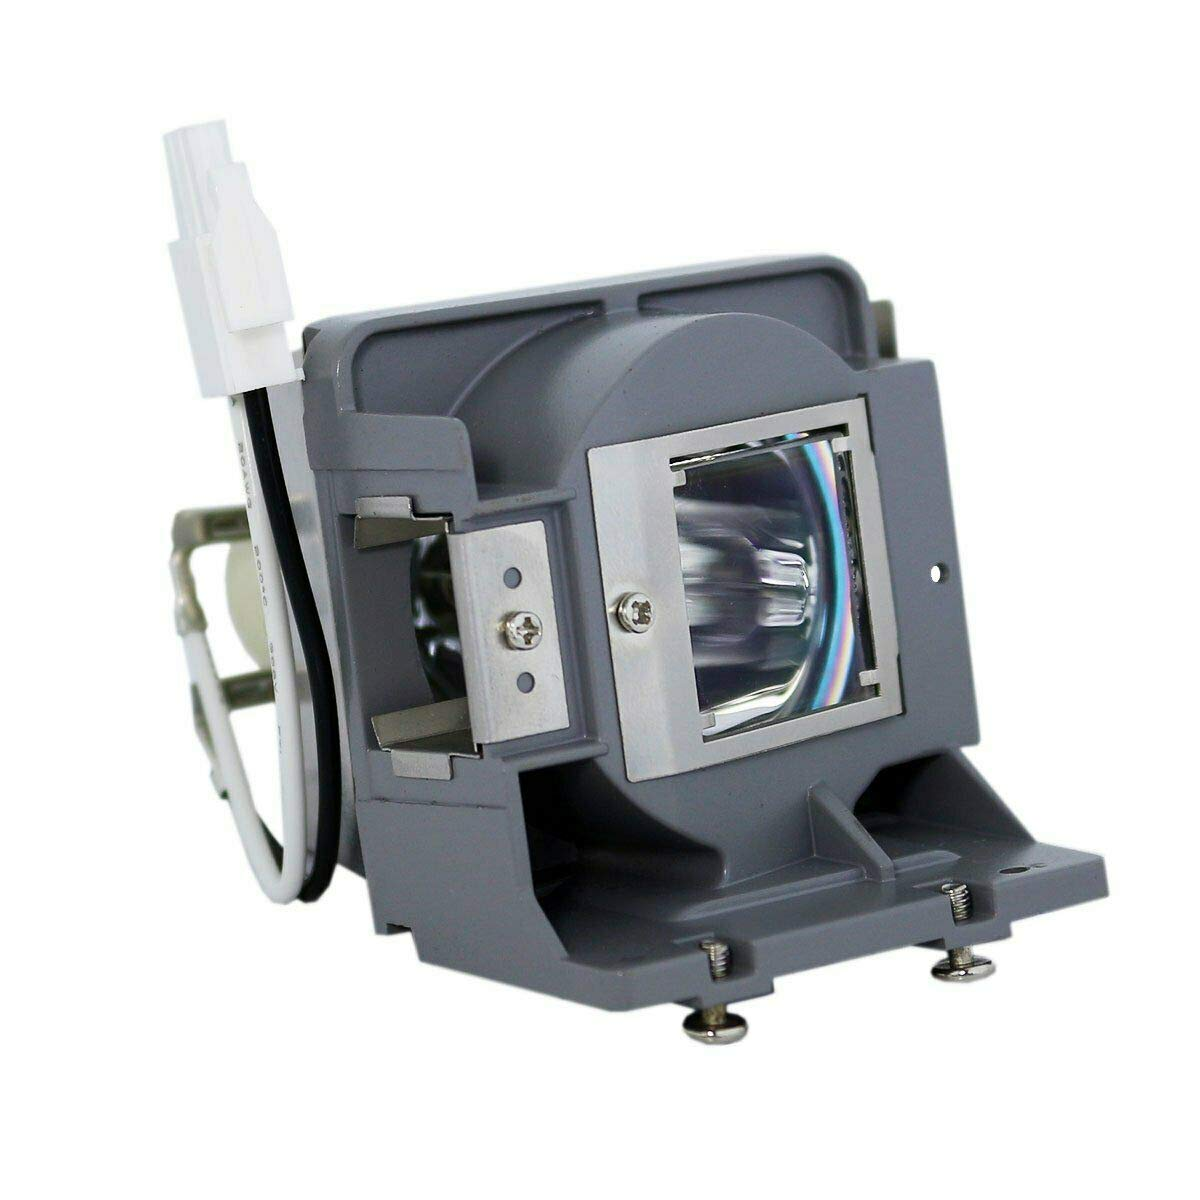 CTLAMP bl-fu190 C/pq484 – 2401互換ランプwith housing for OPTOMA dx328 dx330 dx343 h100 s2010 s2015 s302 s303 s313 W2015 W303 W313 x2010 x2015 x302 x303 x313プロジェクタ   B06Y2ZD41N